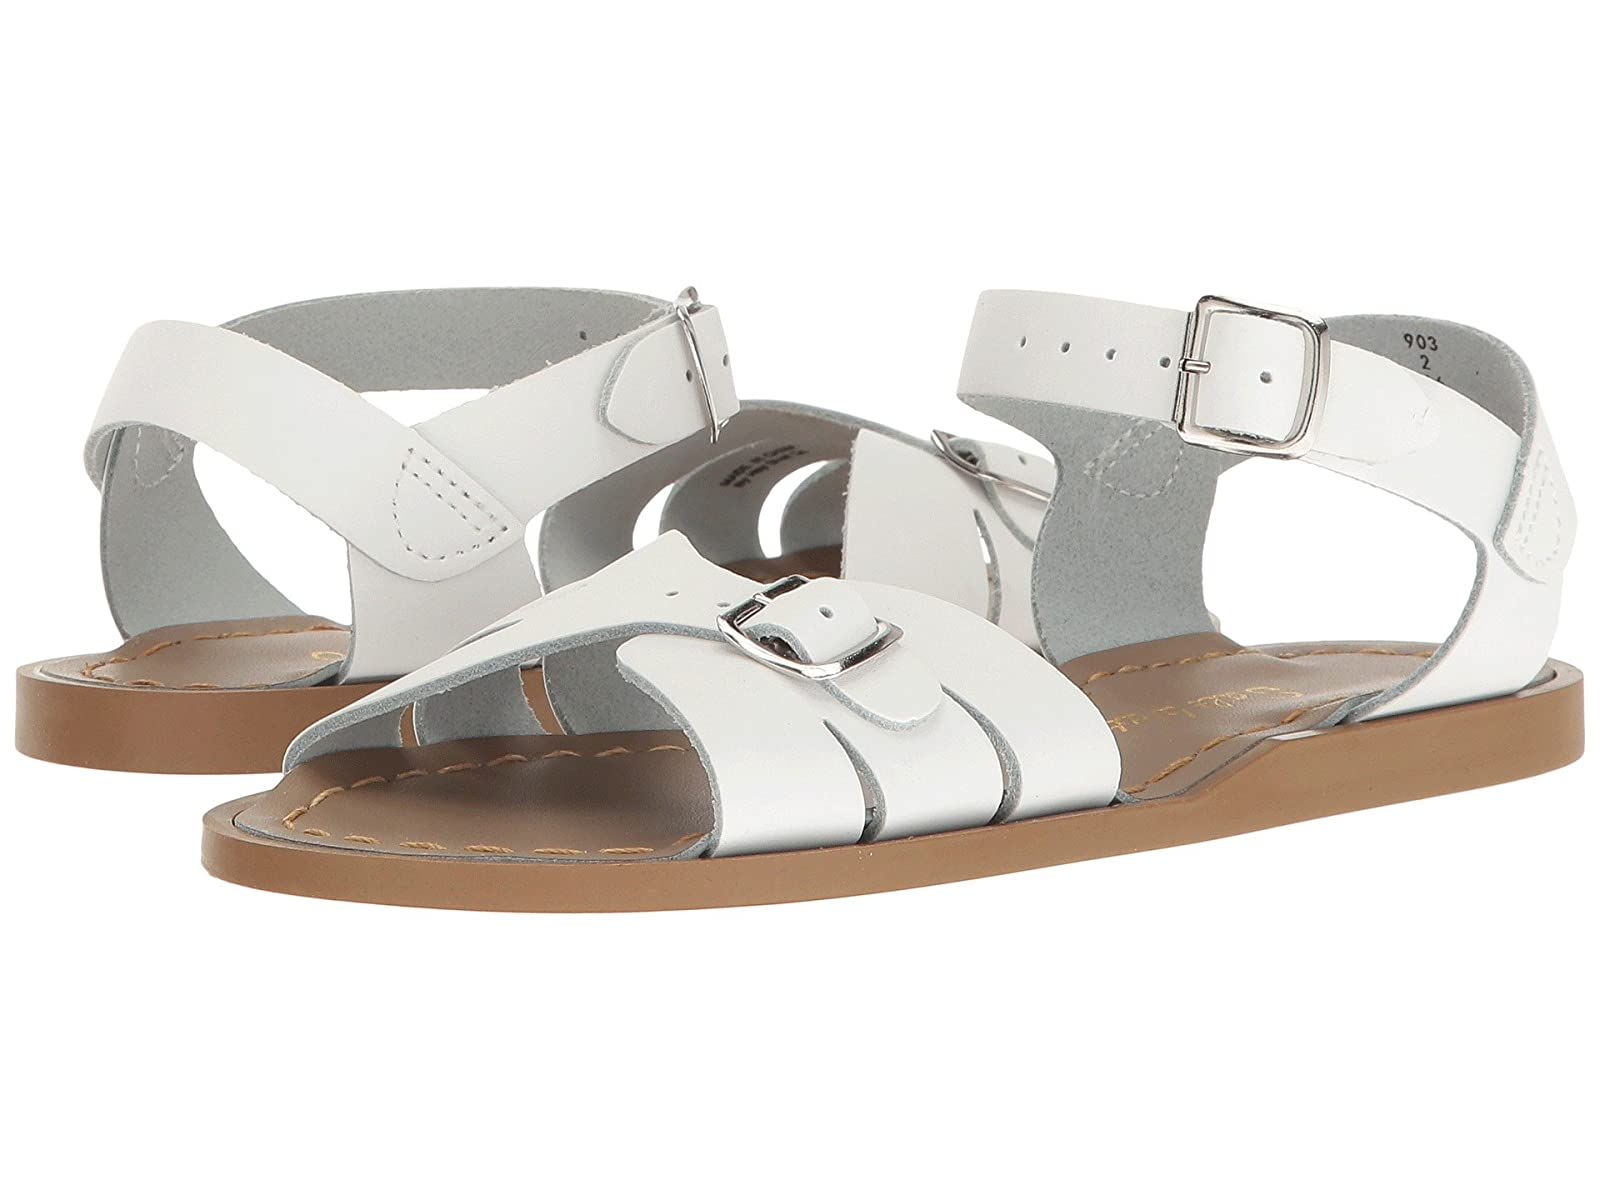 Salt Water Sandal by Hoy Shoes Classic (Little Kid)Atmospheric grades have affordable shoes